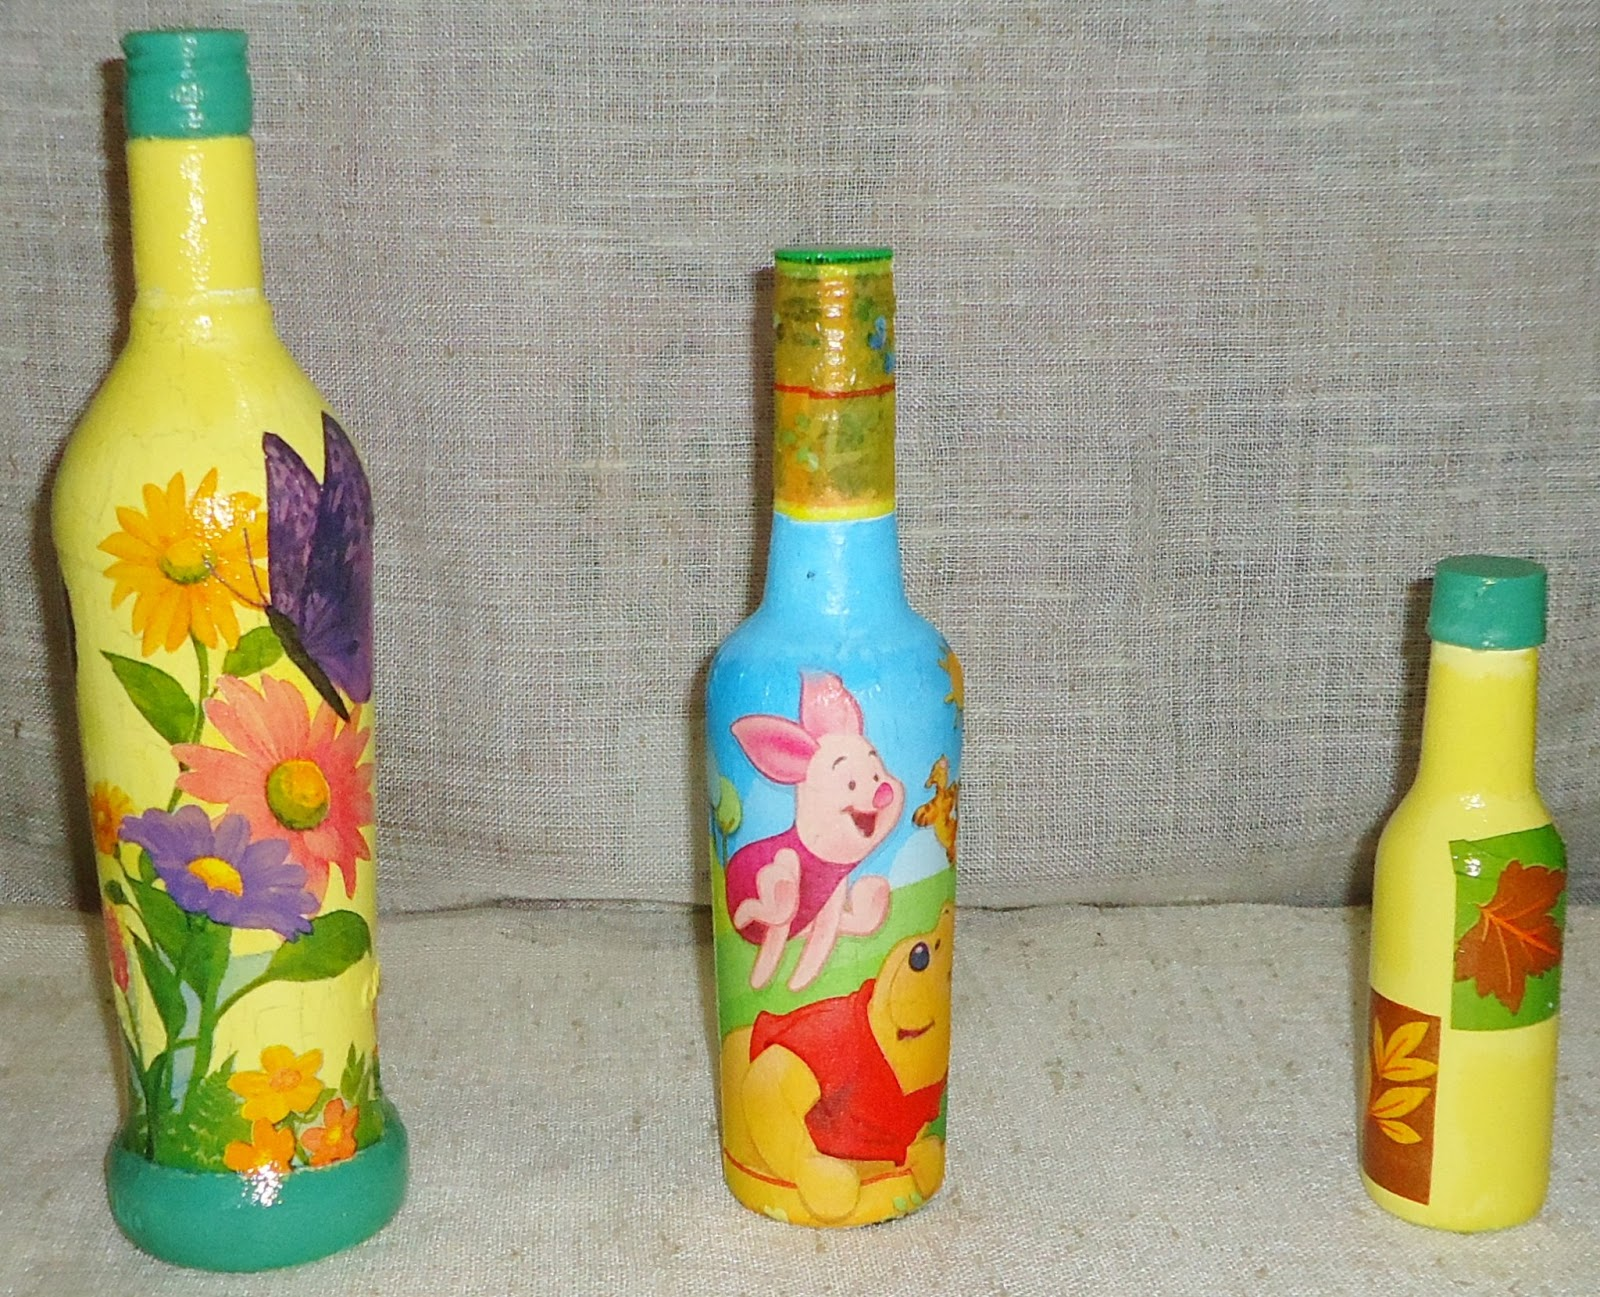 Comprar Botellas Decoradas D 39talles Para Toda Ocacion Botellas Decoradas